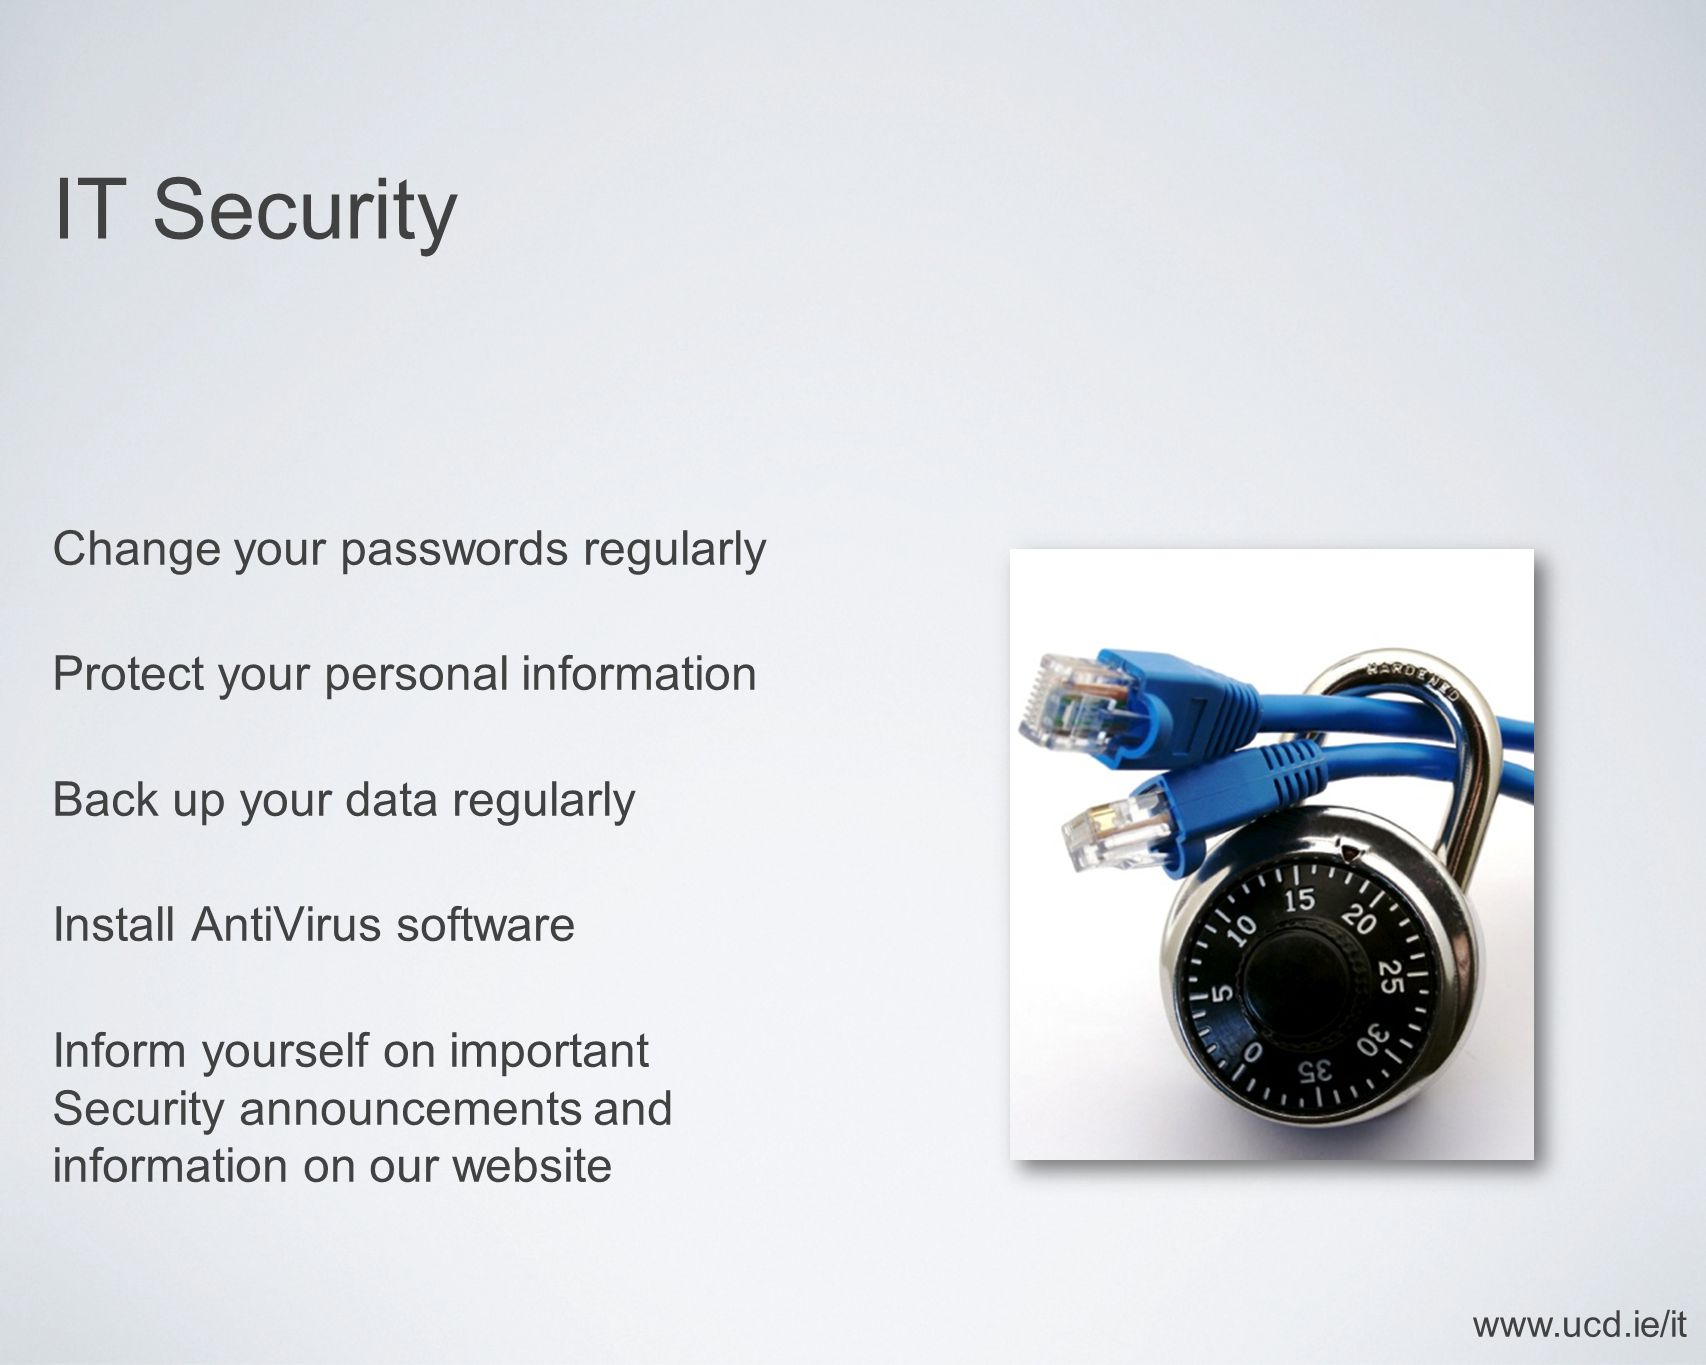 IT Security Change your passwords regularly Protect your personal information Back up your data regularly Install AntiVirus software Inform yourself on important Security announcements and information on our website www.ucd.ie/it